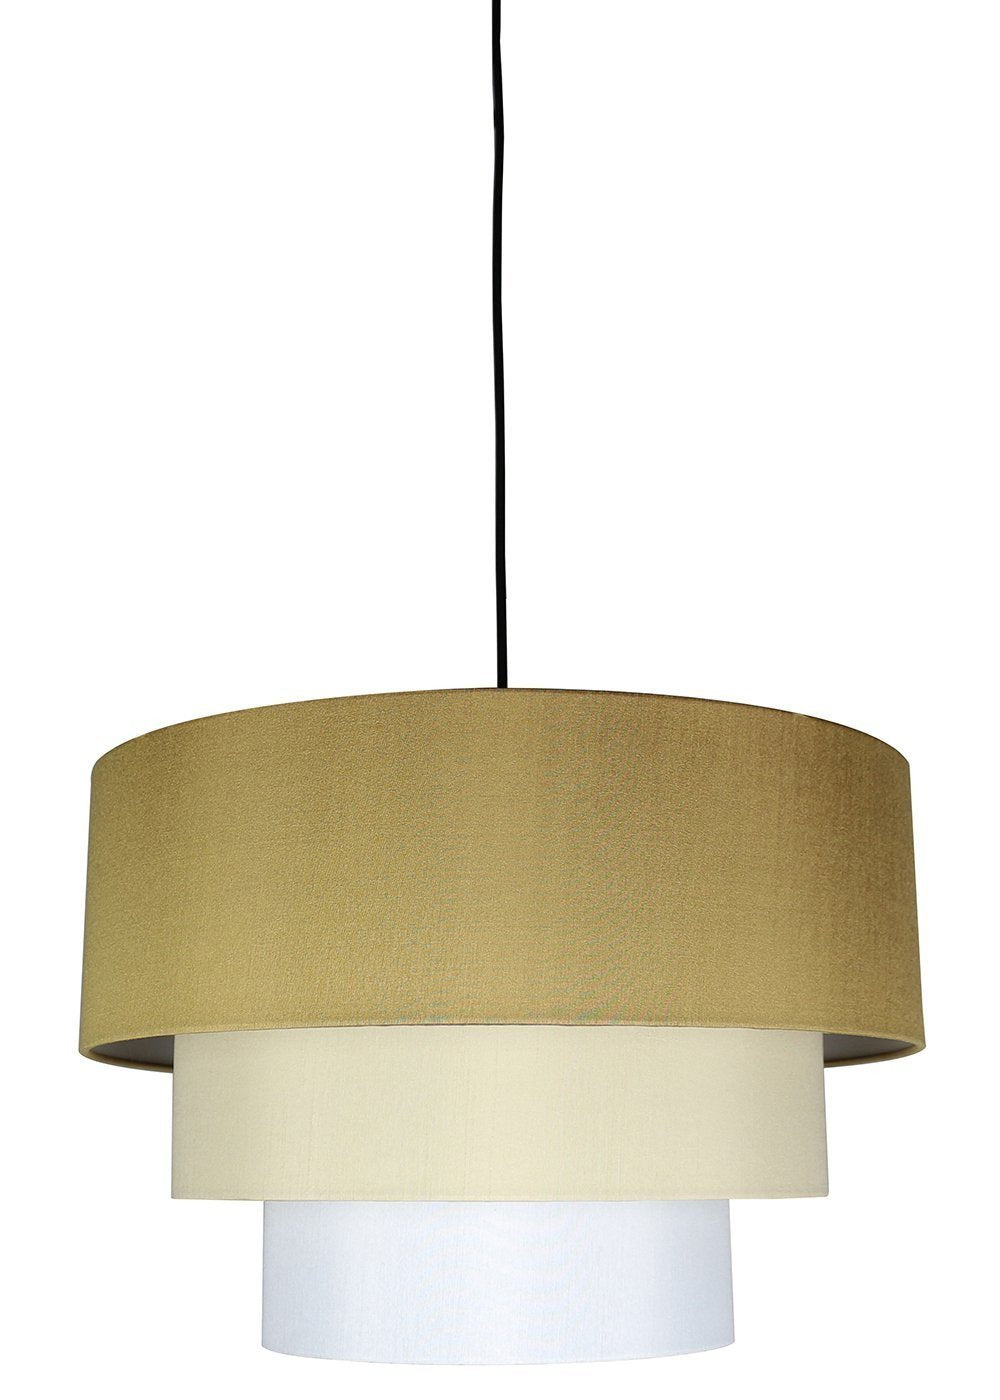 Renzo 3-tier Shade Pendant with Hanging Light Kit, 18-inch Diameter